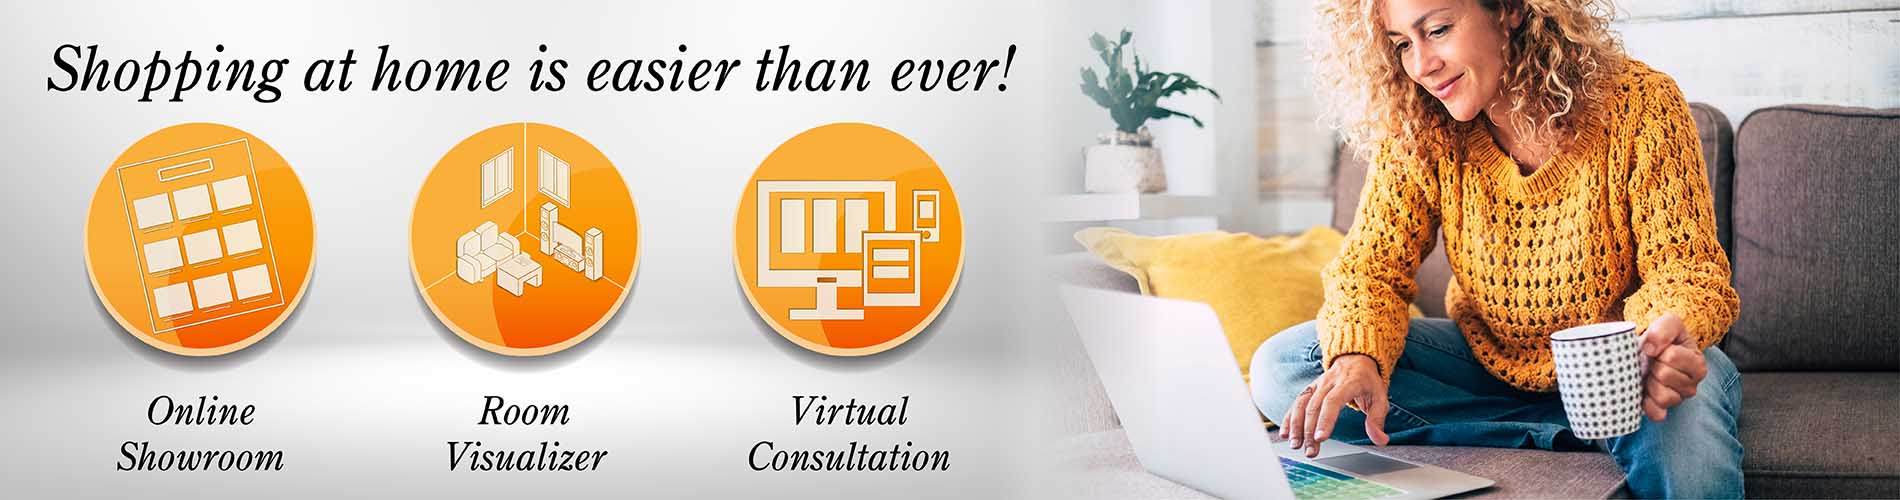 Shopping at home is easier than ever! - Online Showroom, Room Visualizer, Virtual Consultations -Work with Towne Pride Interiors at your convenience in your own home.